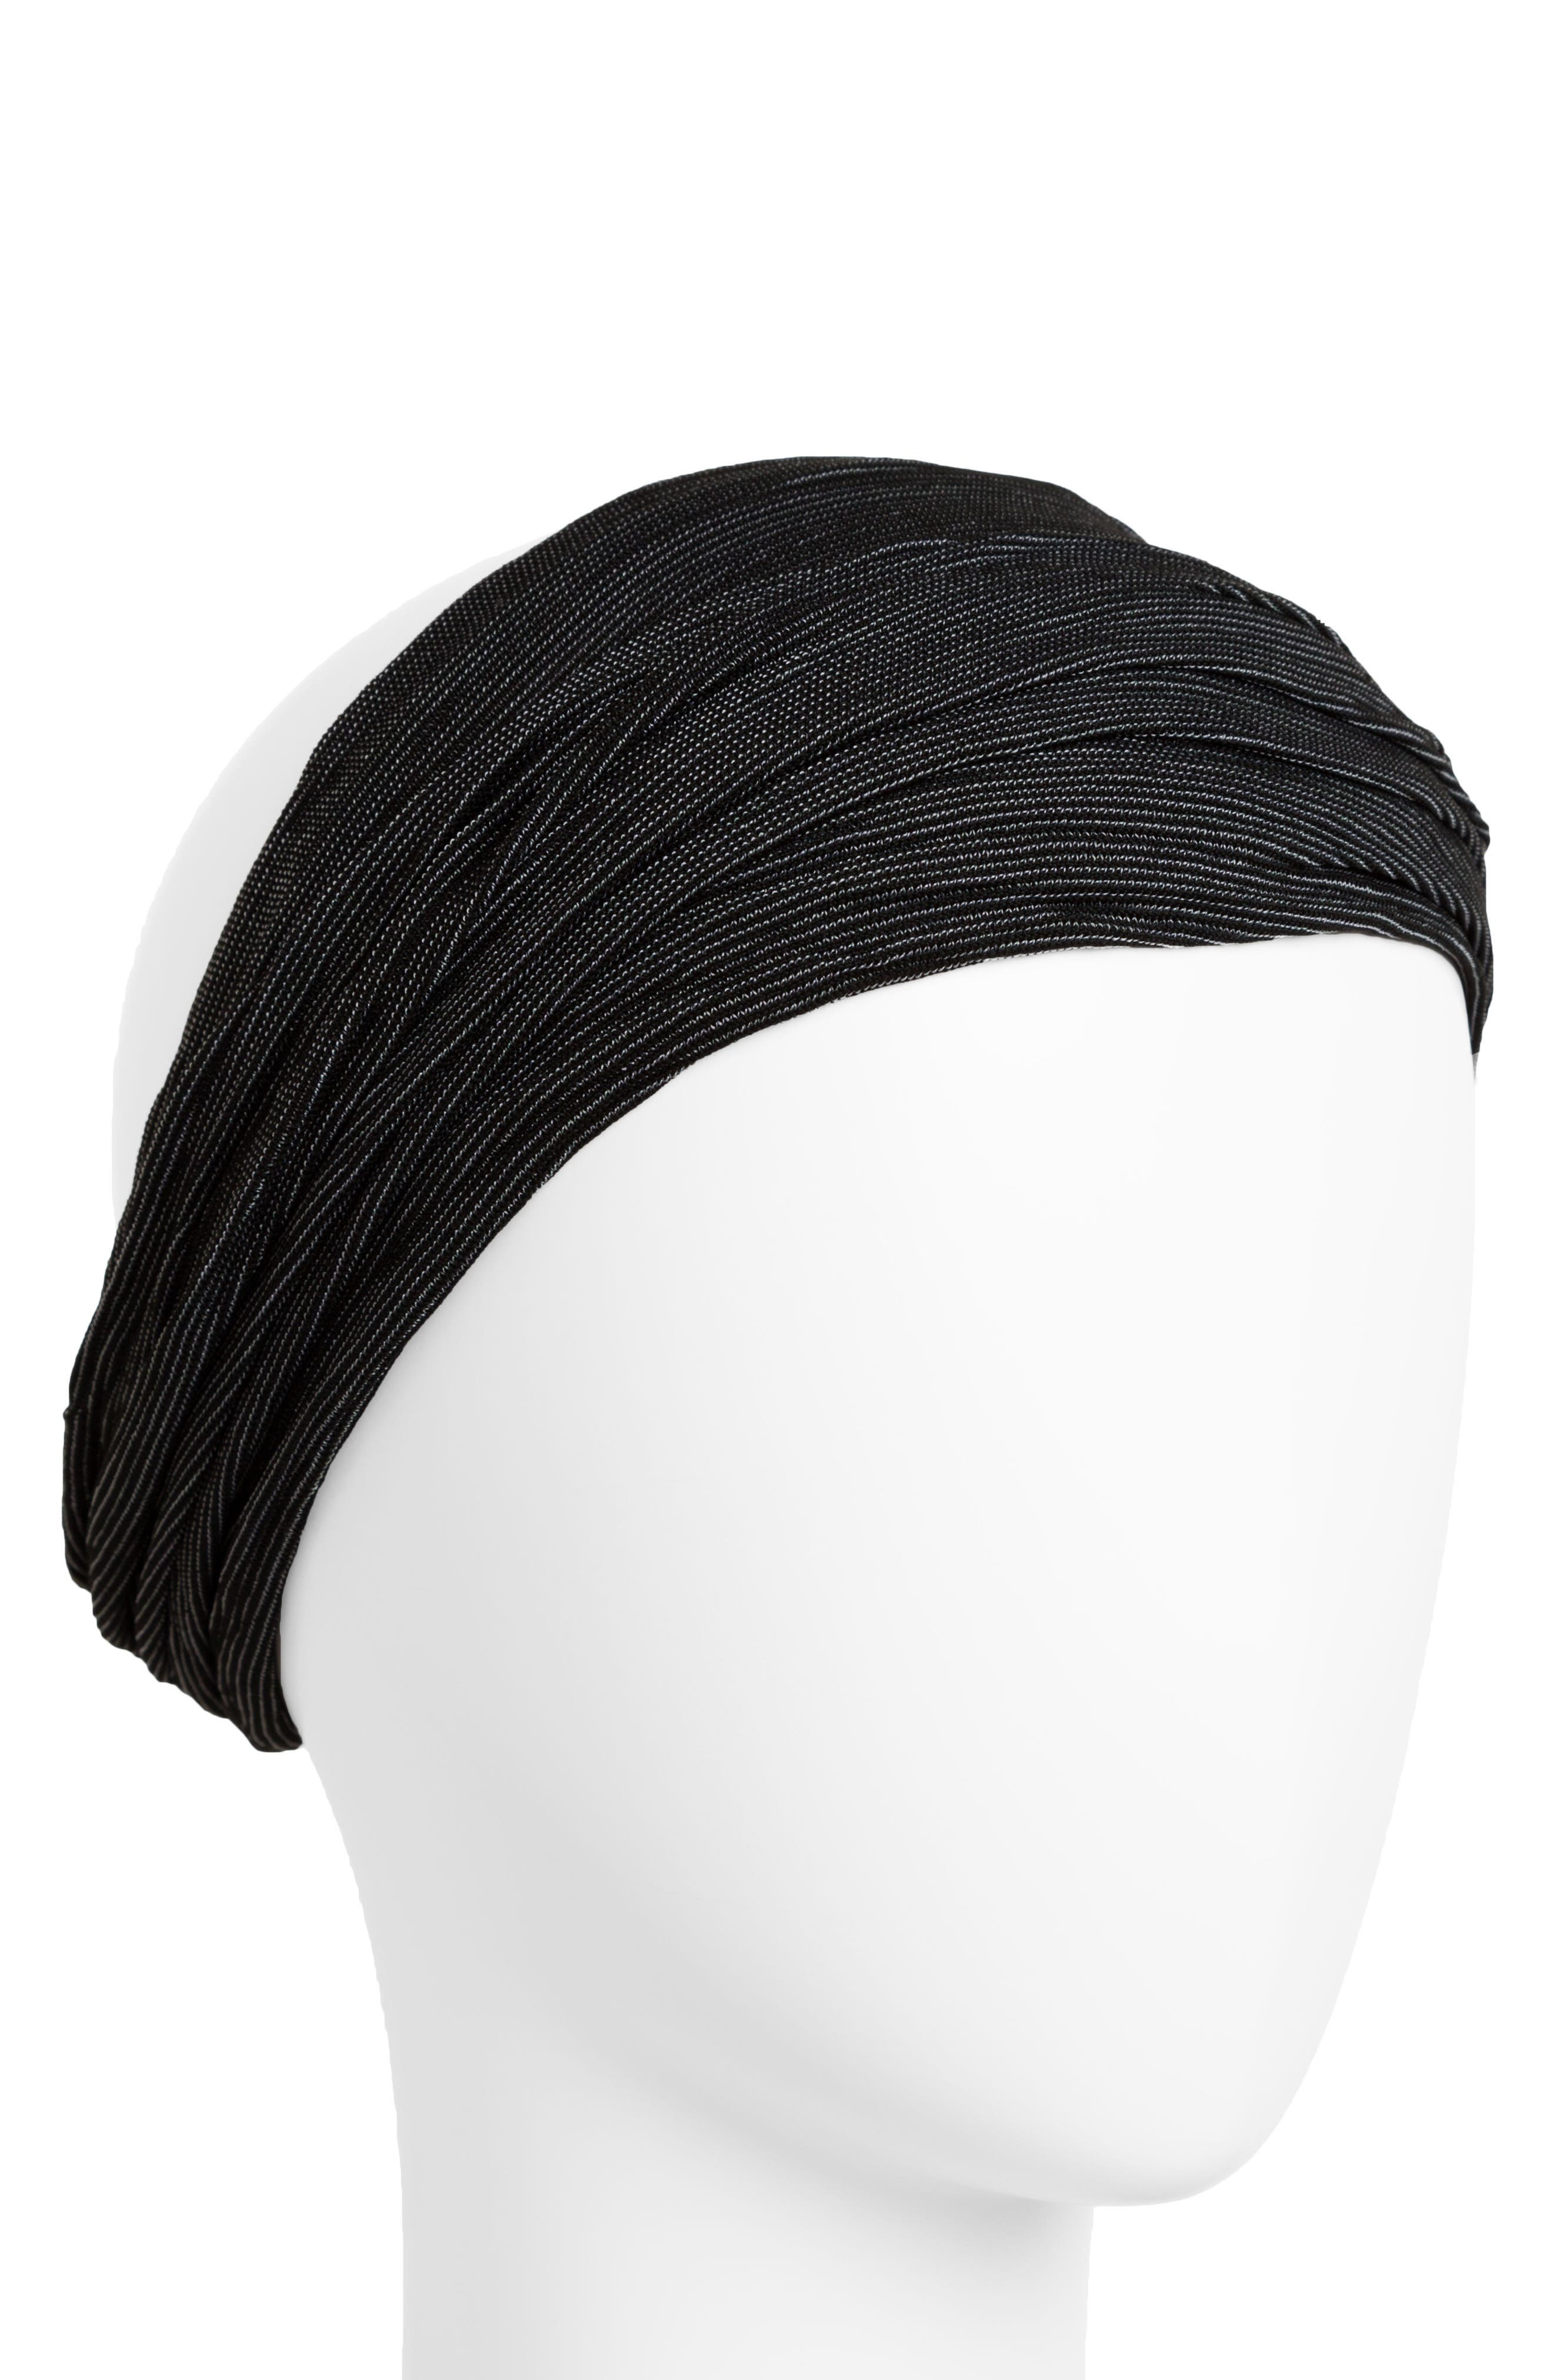 Space Dye Relaxed Turban Head Wrap,                         Main,                         color, 001